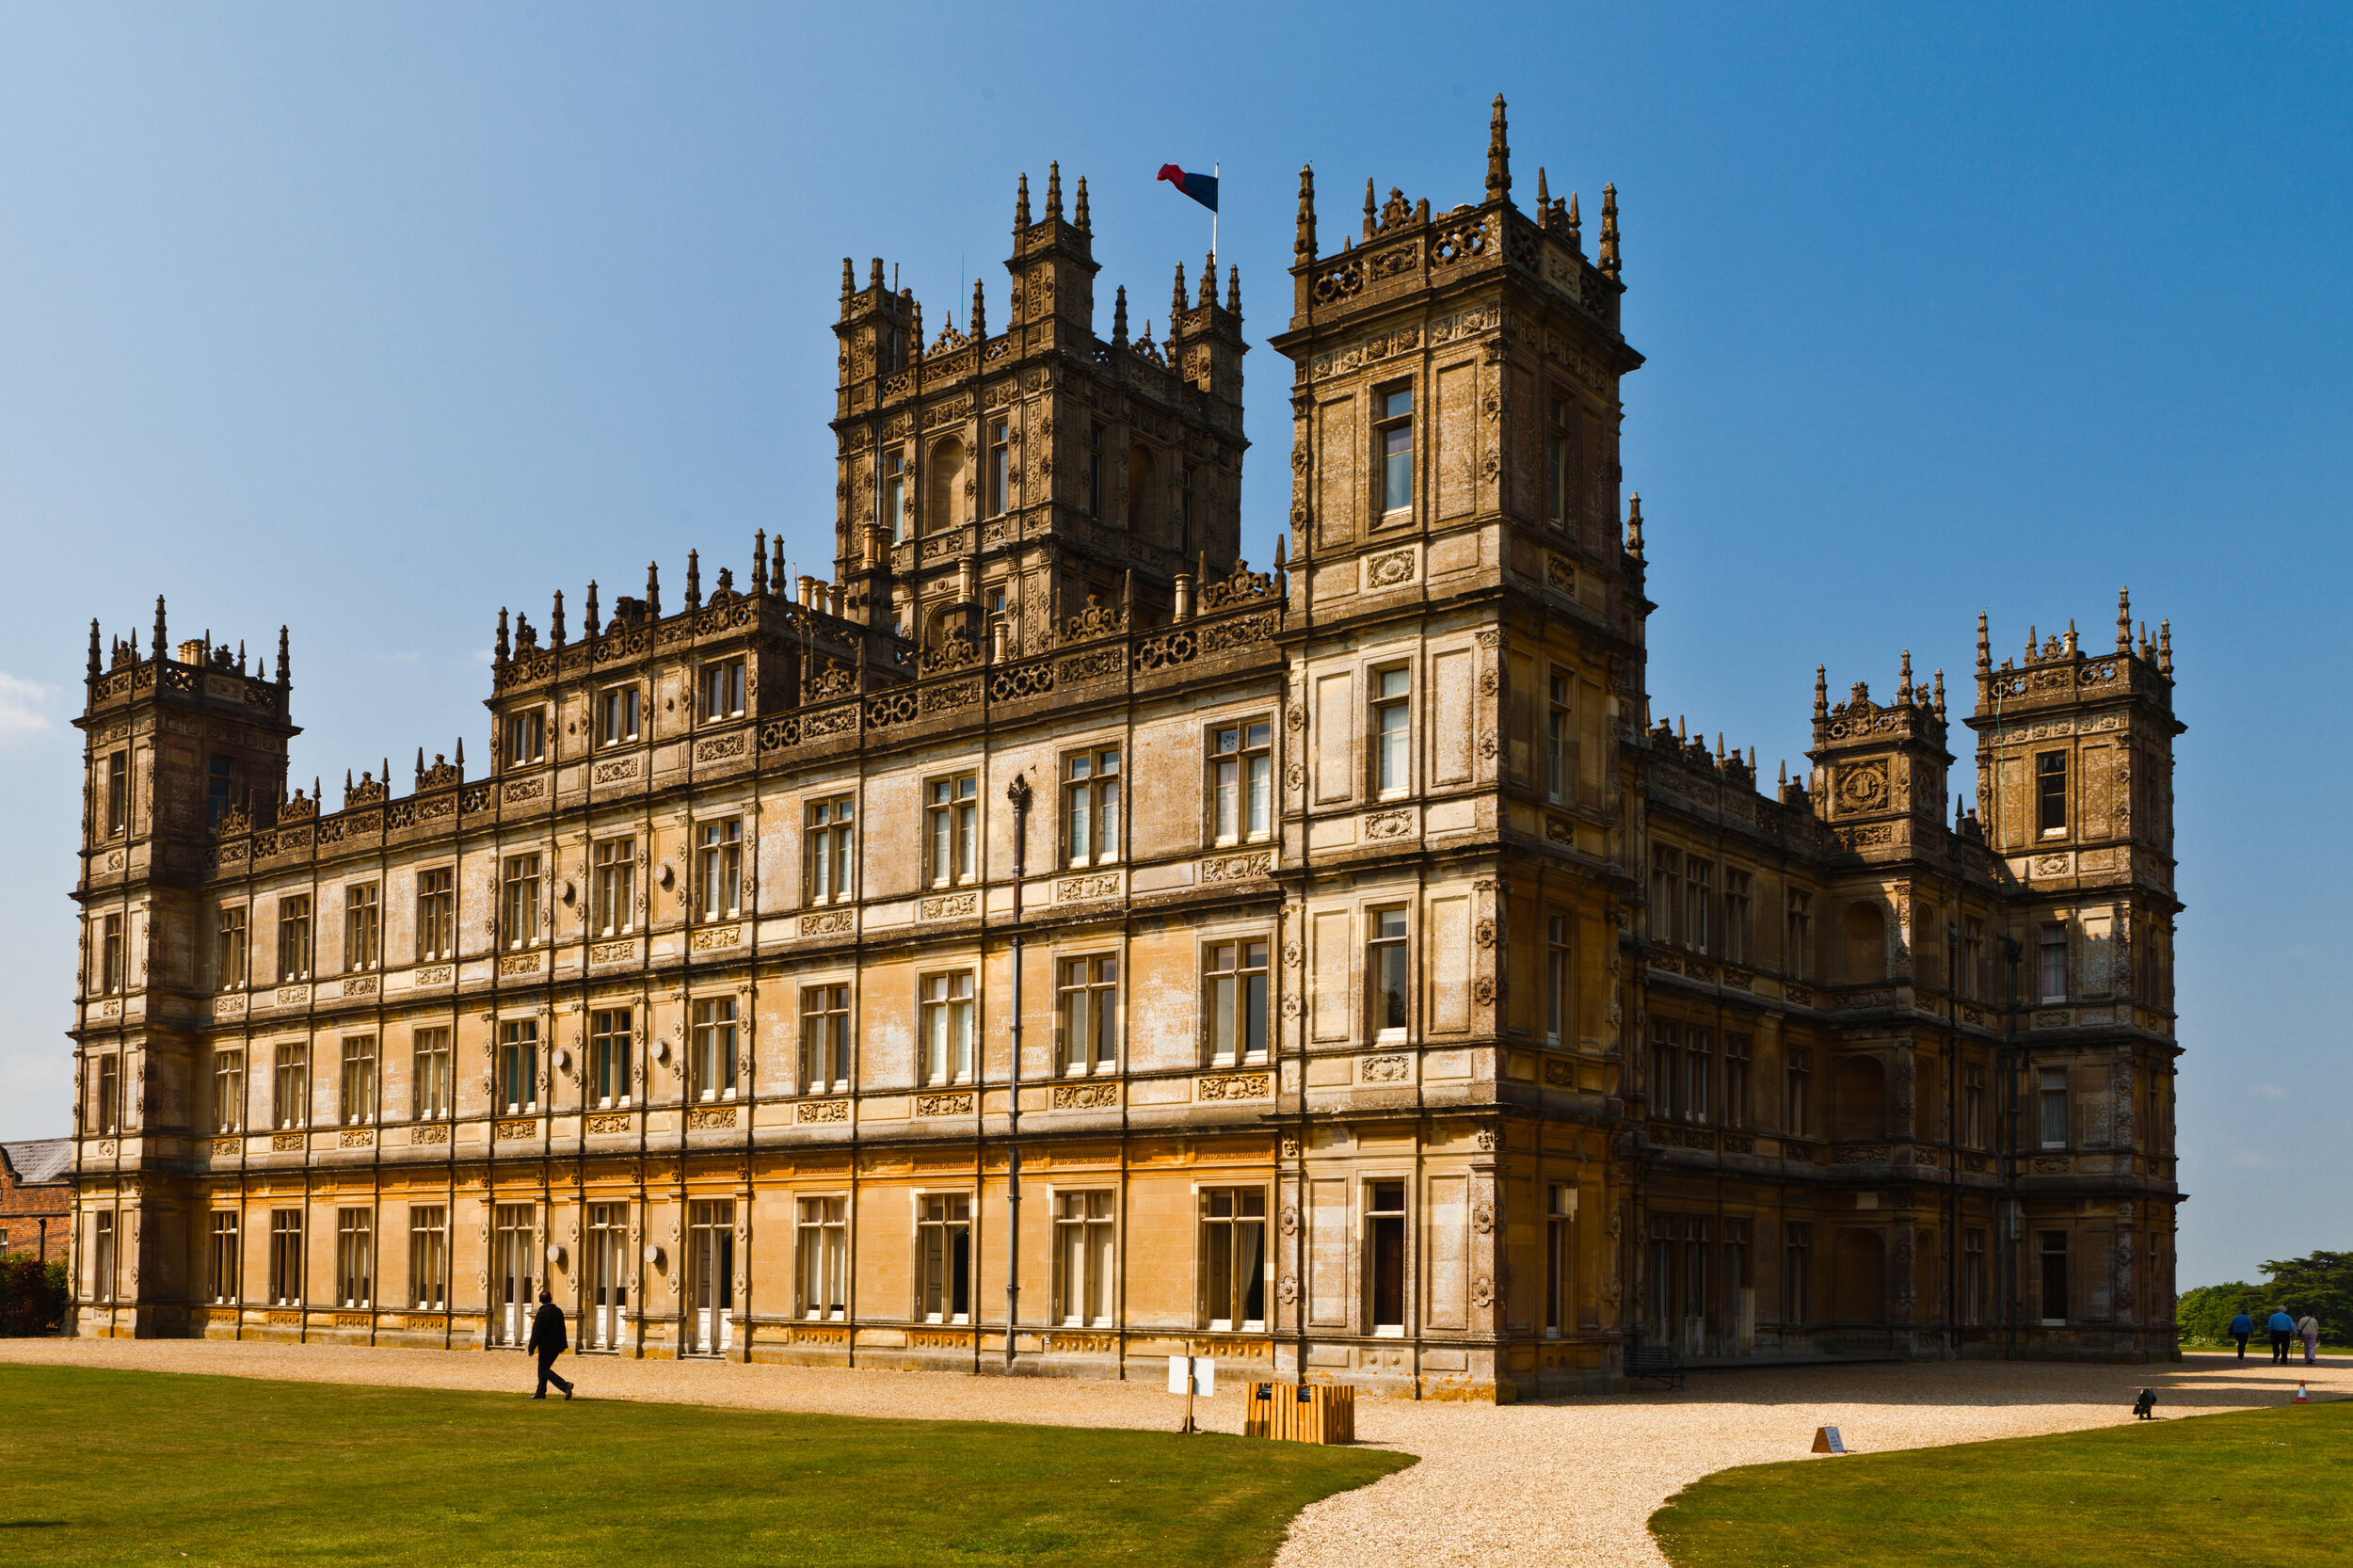 Highclere Castle  By Richard Munckton from Windsor, Melbourne, Australia - Downton Abbey (Highclere Castle), CC BY 2.0, https://commons.wikimedia.org/w/index.php?curid=17687993